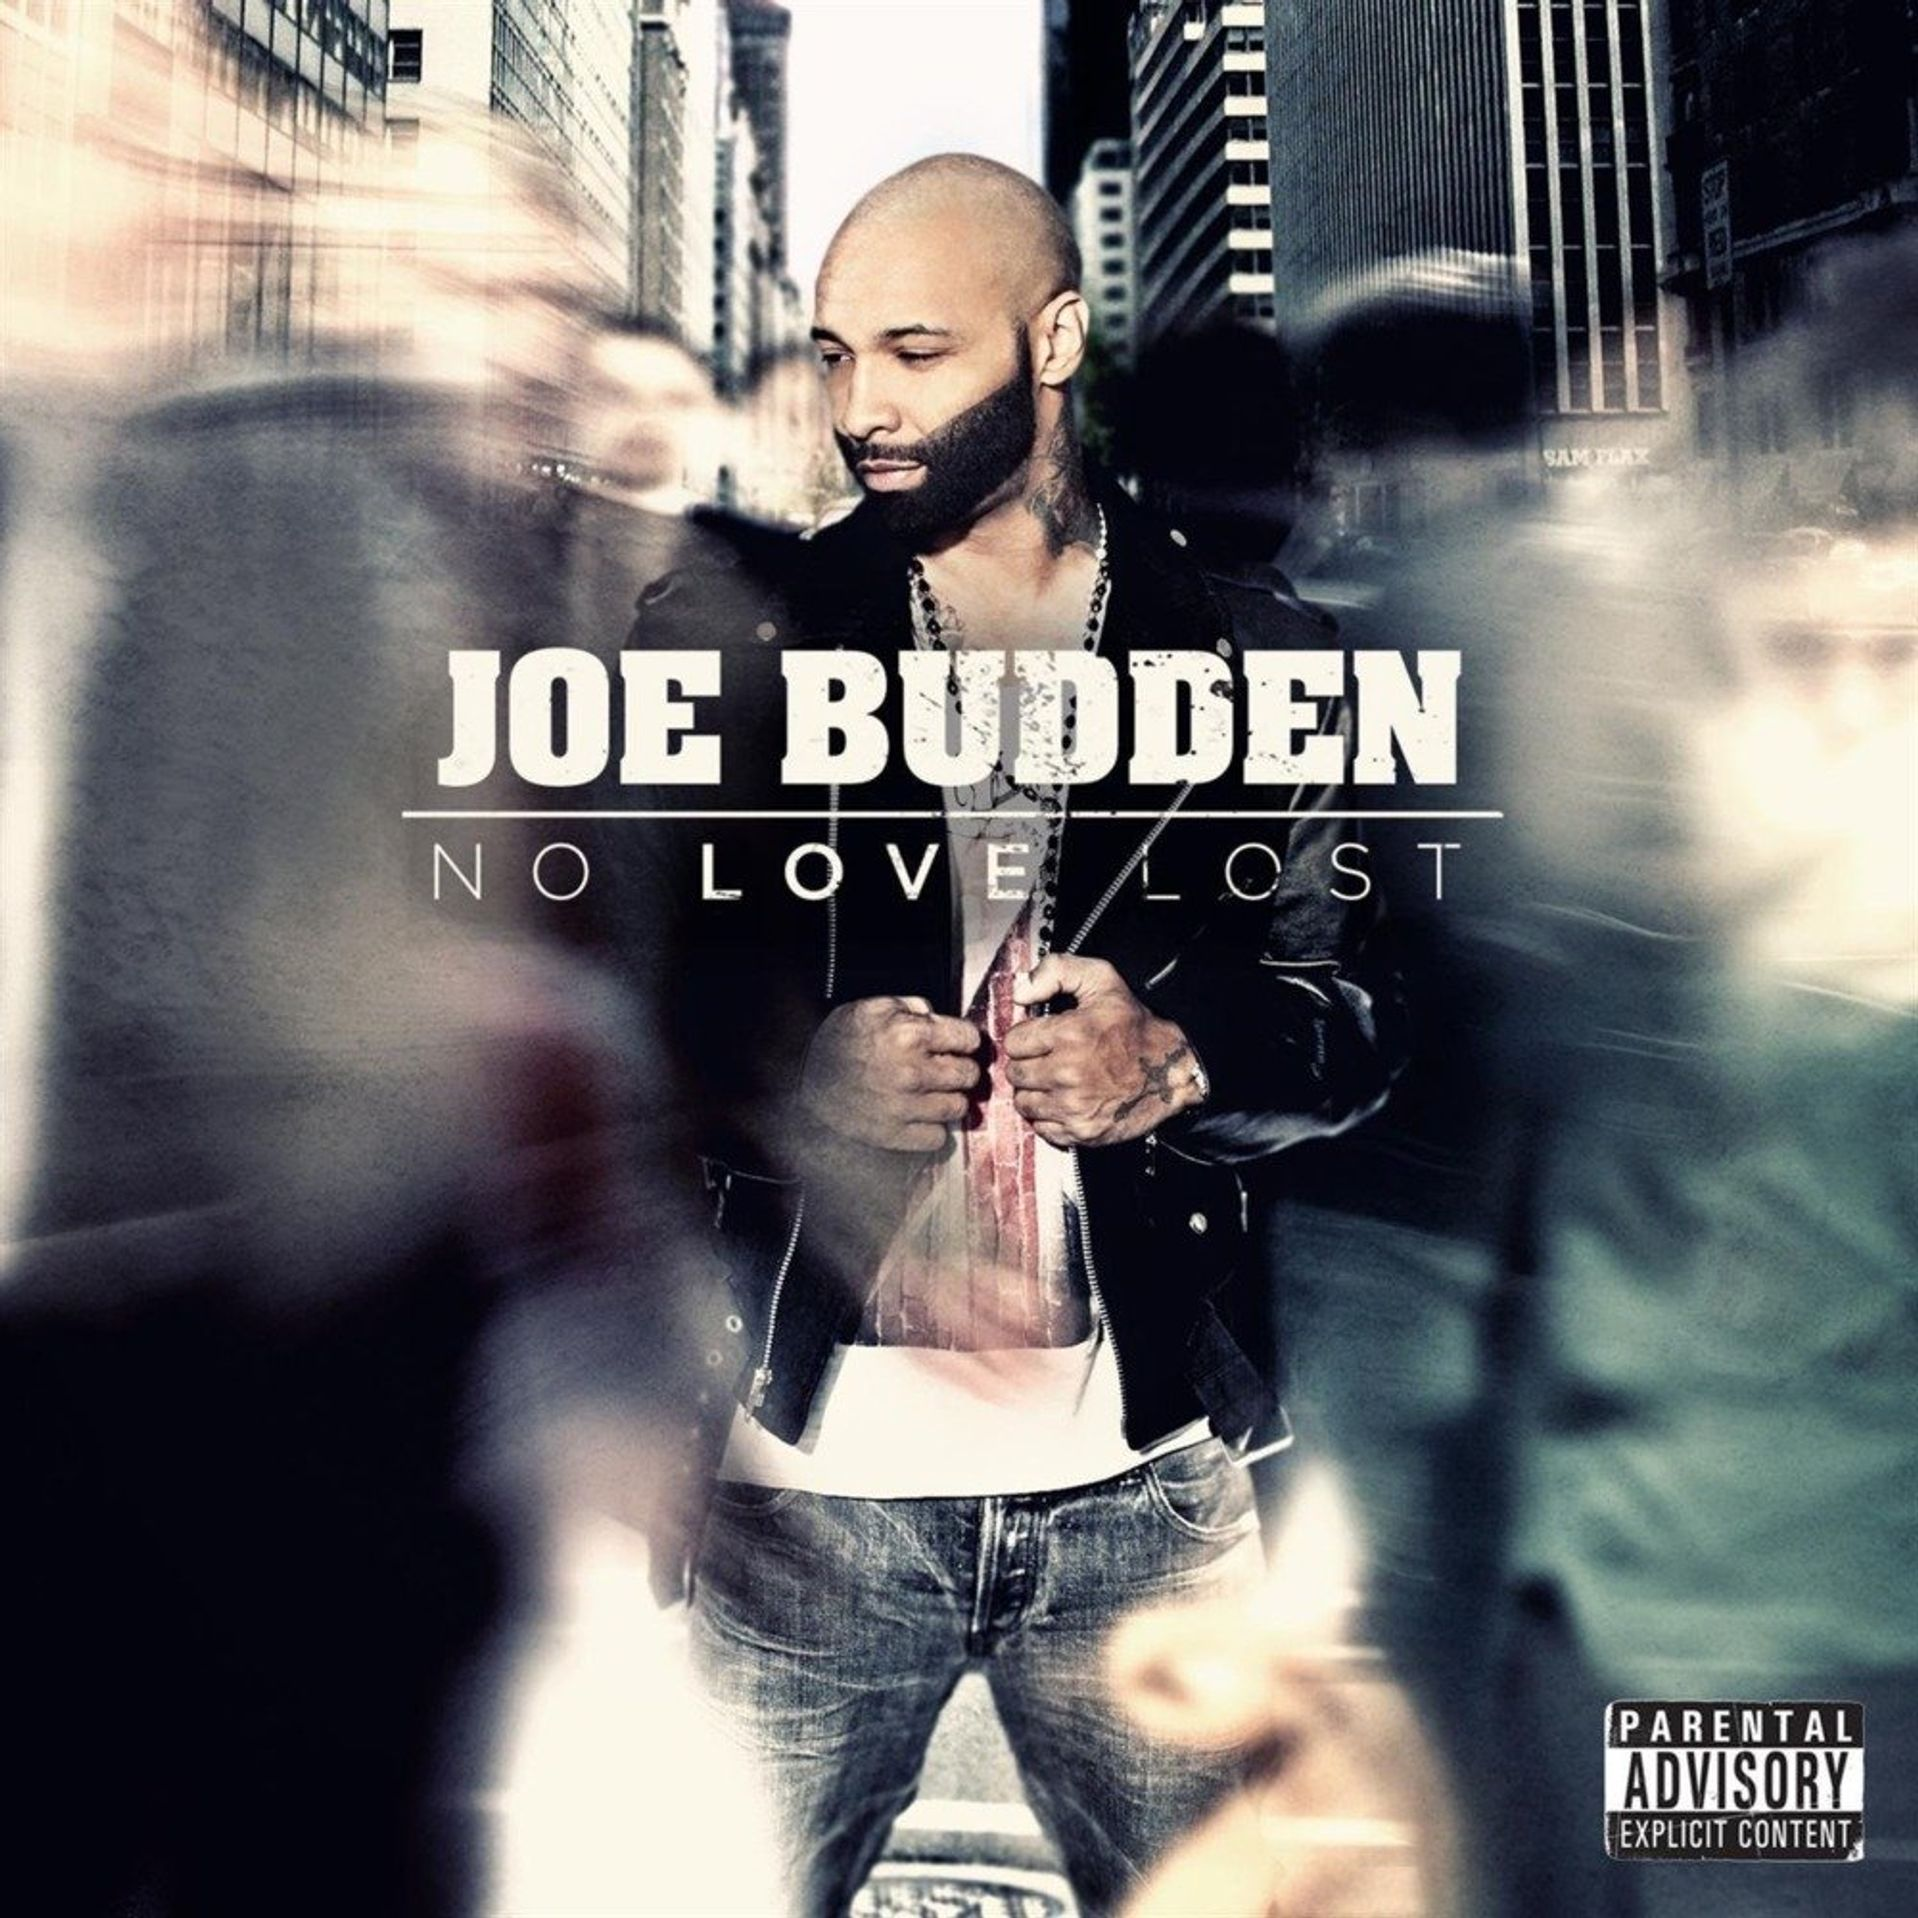 Album Title: No Love Lost by: Joe Budden